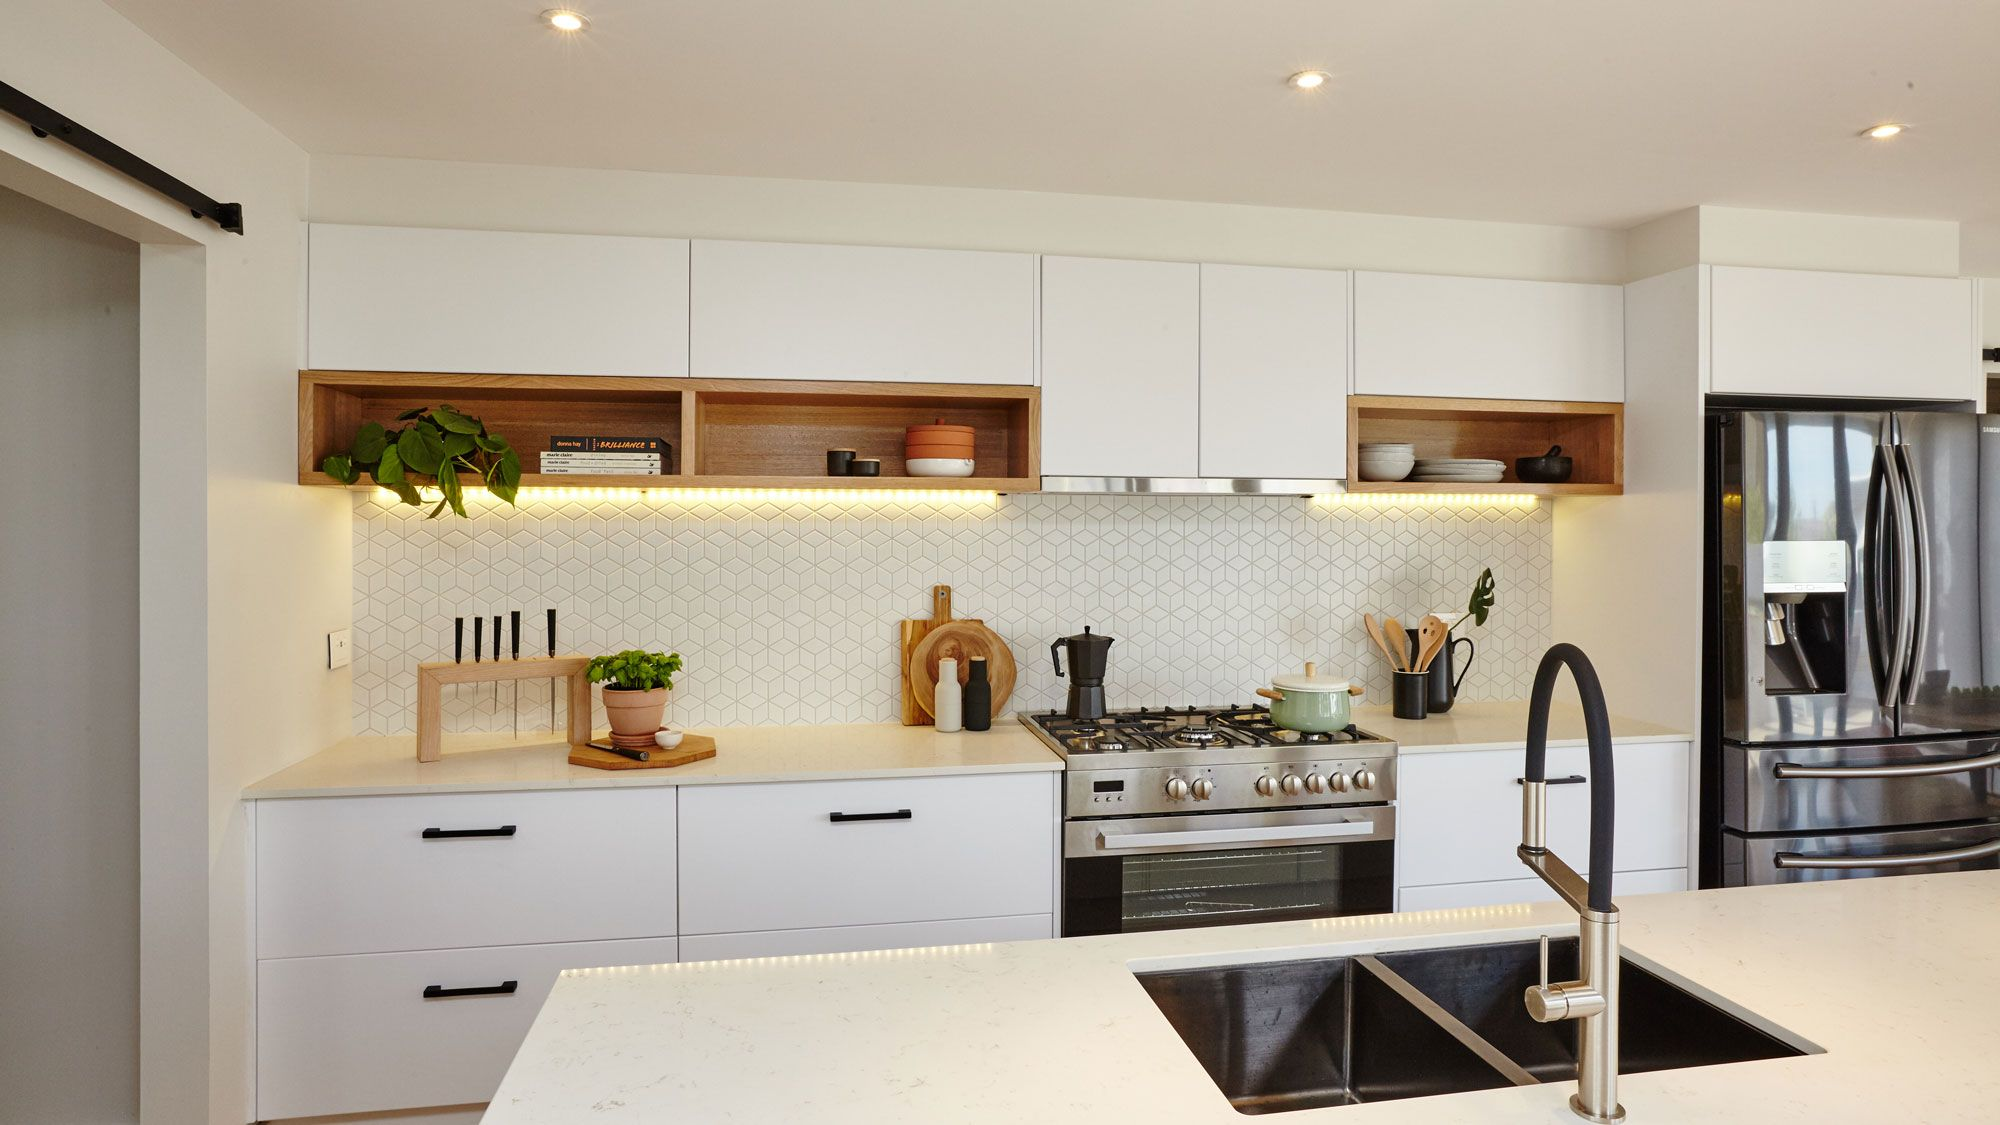 Image result for small pendant light in center of kitchen | Favorite ...